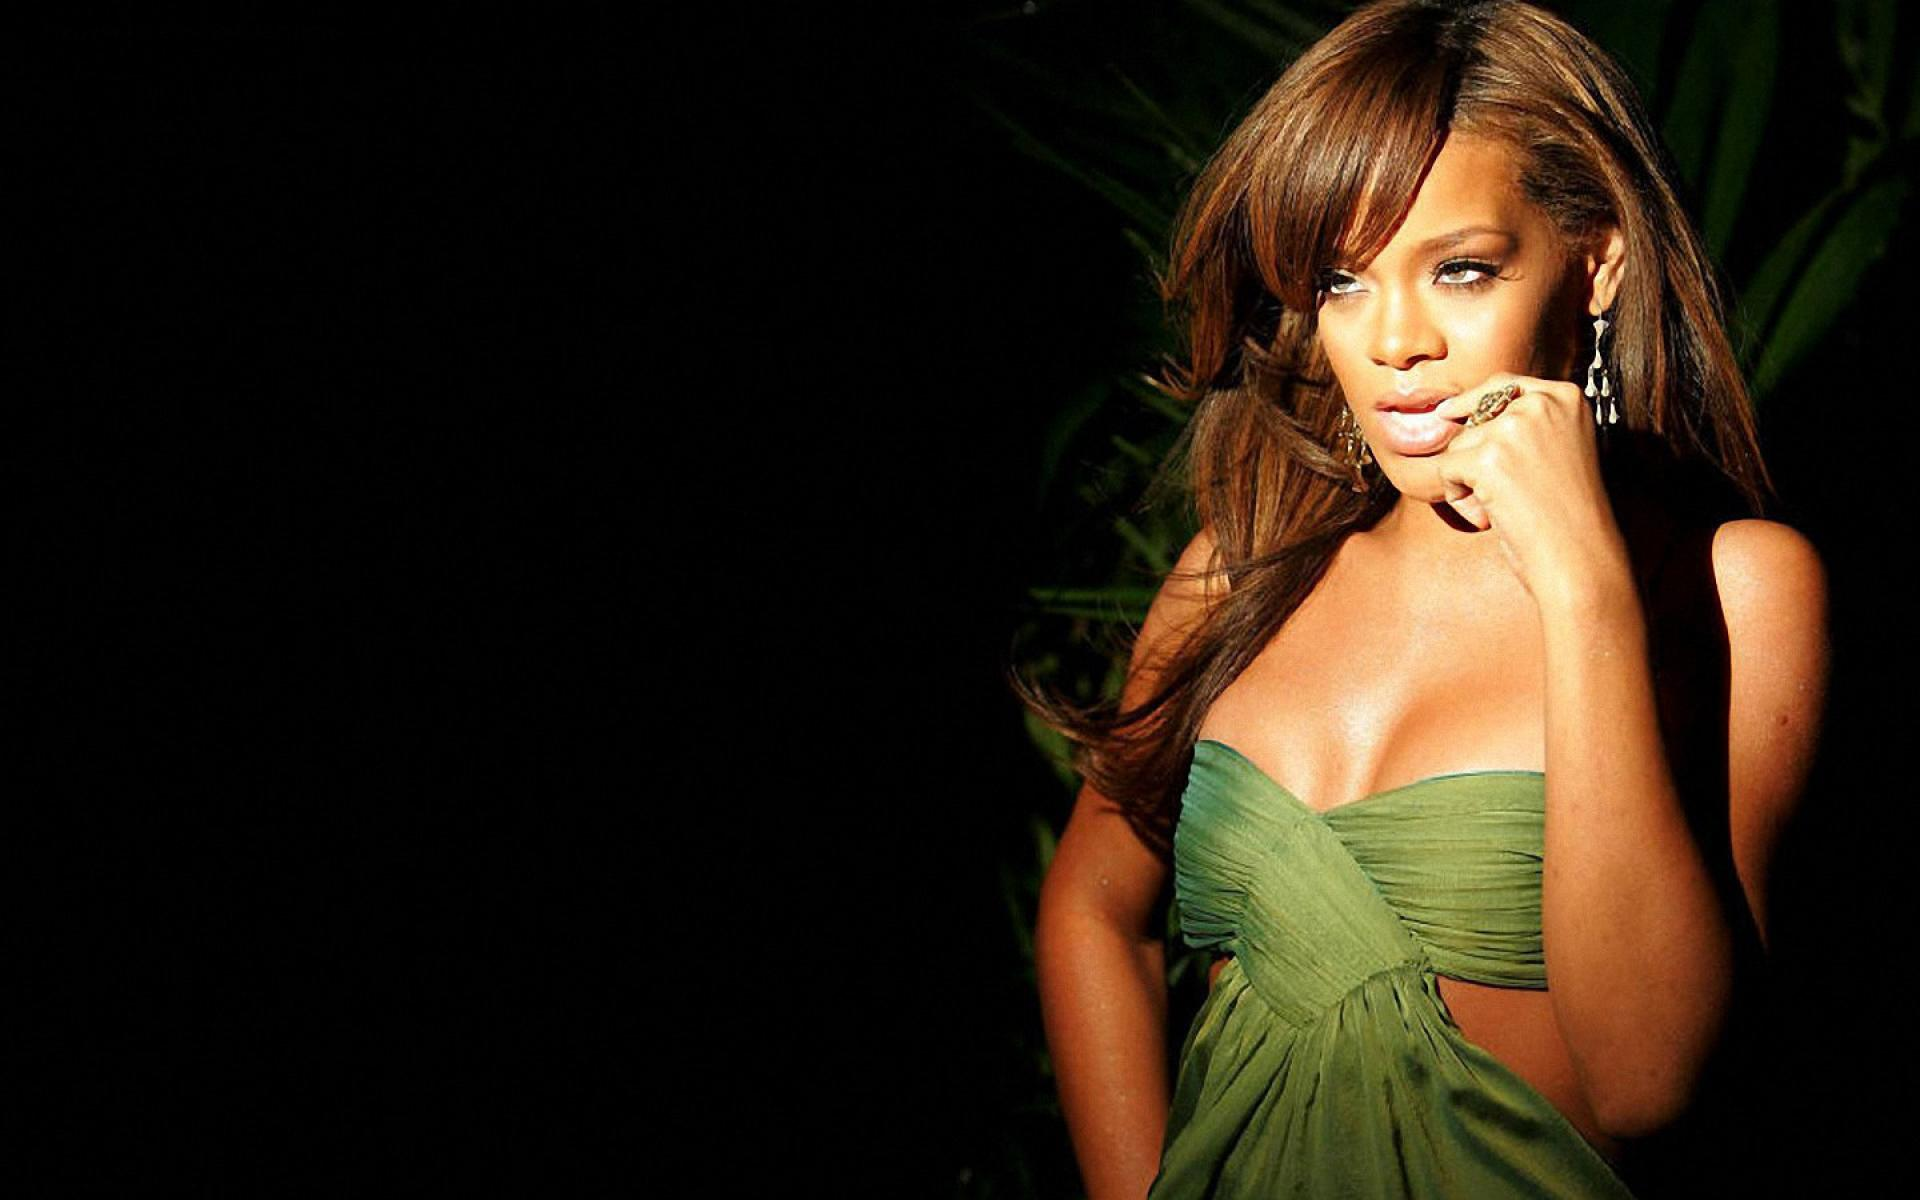 Rihanna Wallpapers Hd Wallpapers